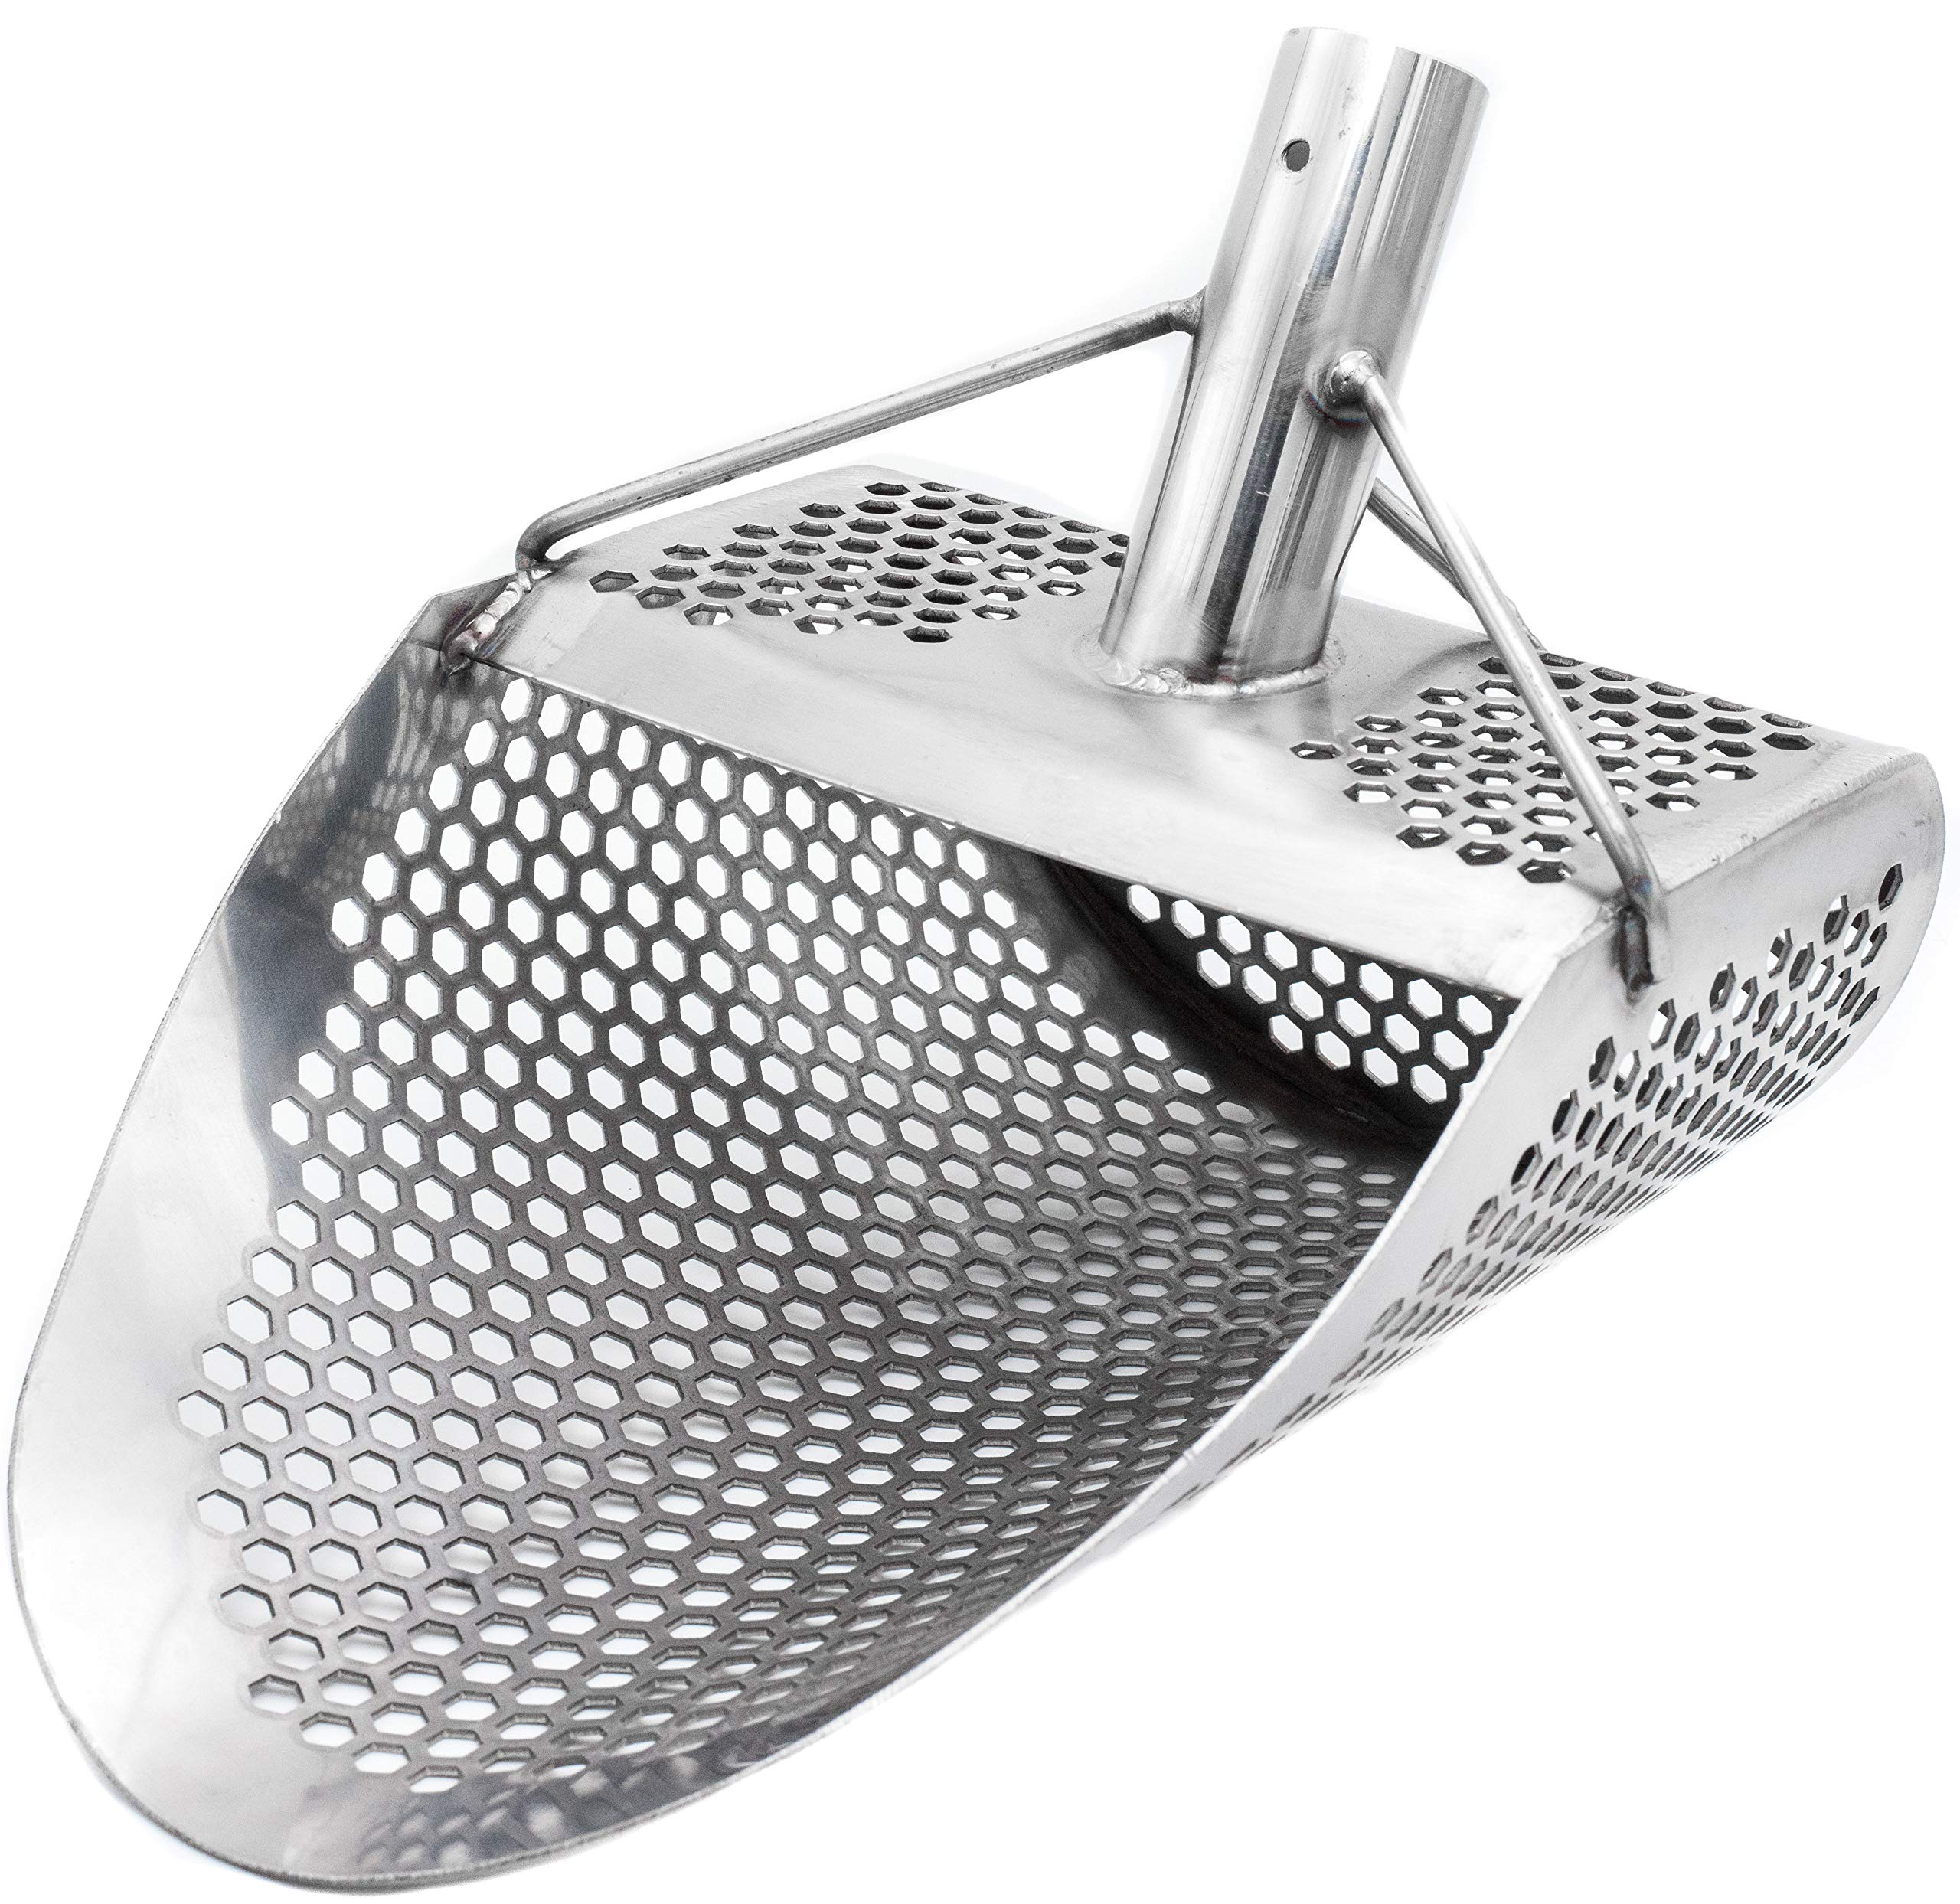 Free2Buy Metal Detecting Sand Scoop 11'' x 8'' Stainless Steel Shovel for Beach Treasure Hunting Designed with 7mm Hexagon Shaped Holes by Free2Buy